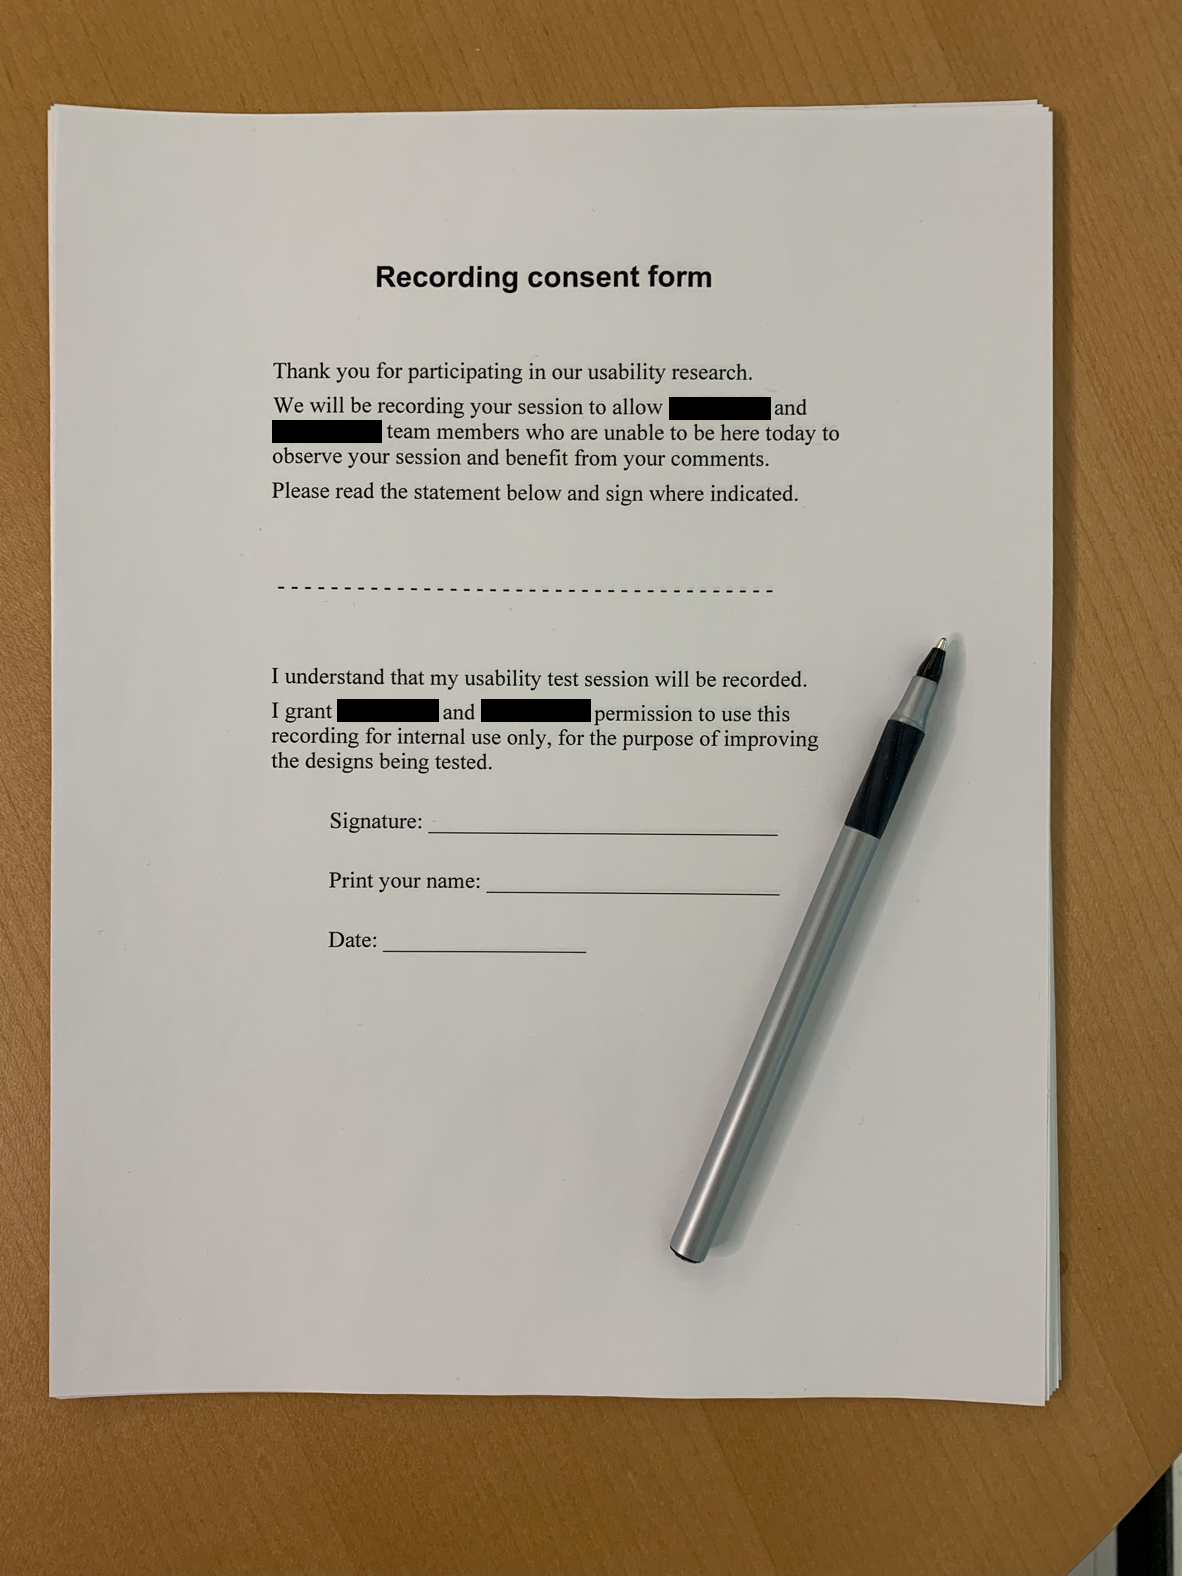 Recording consent form